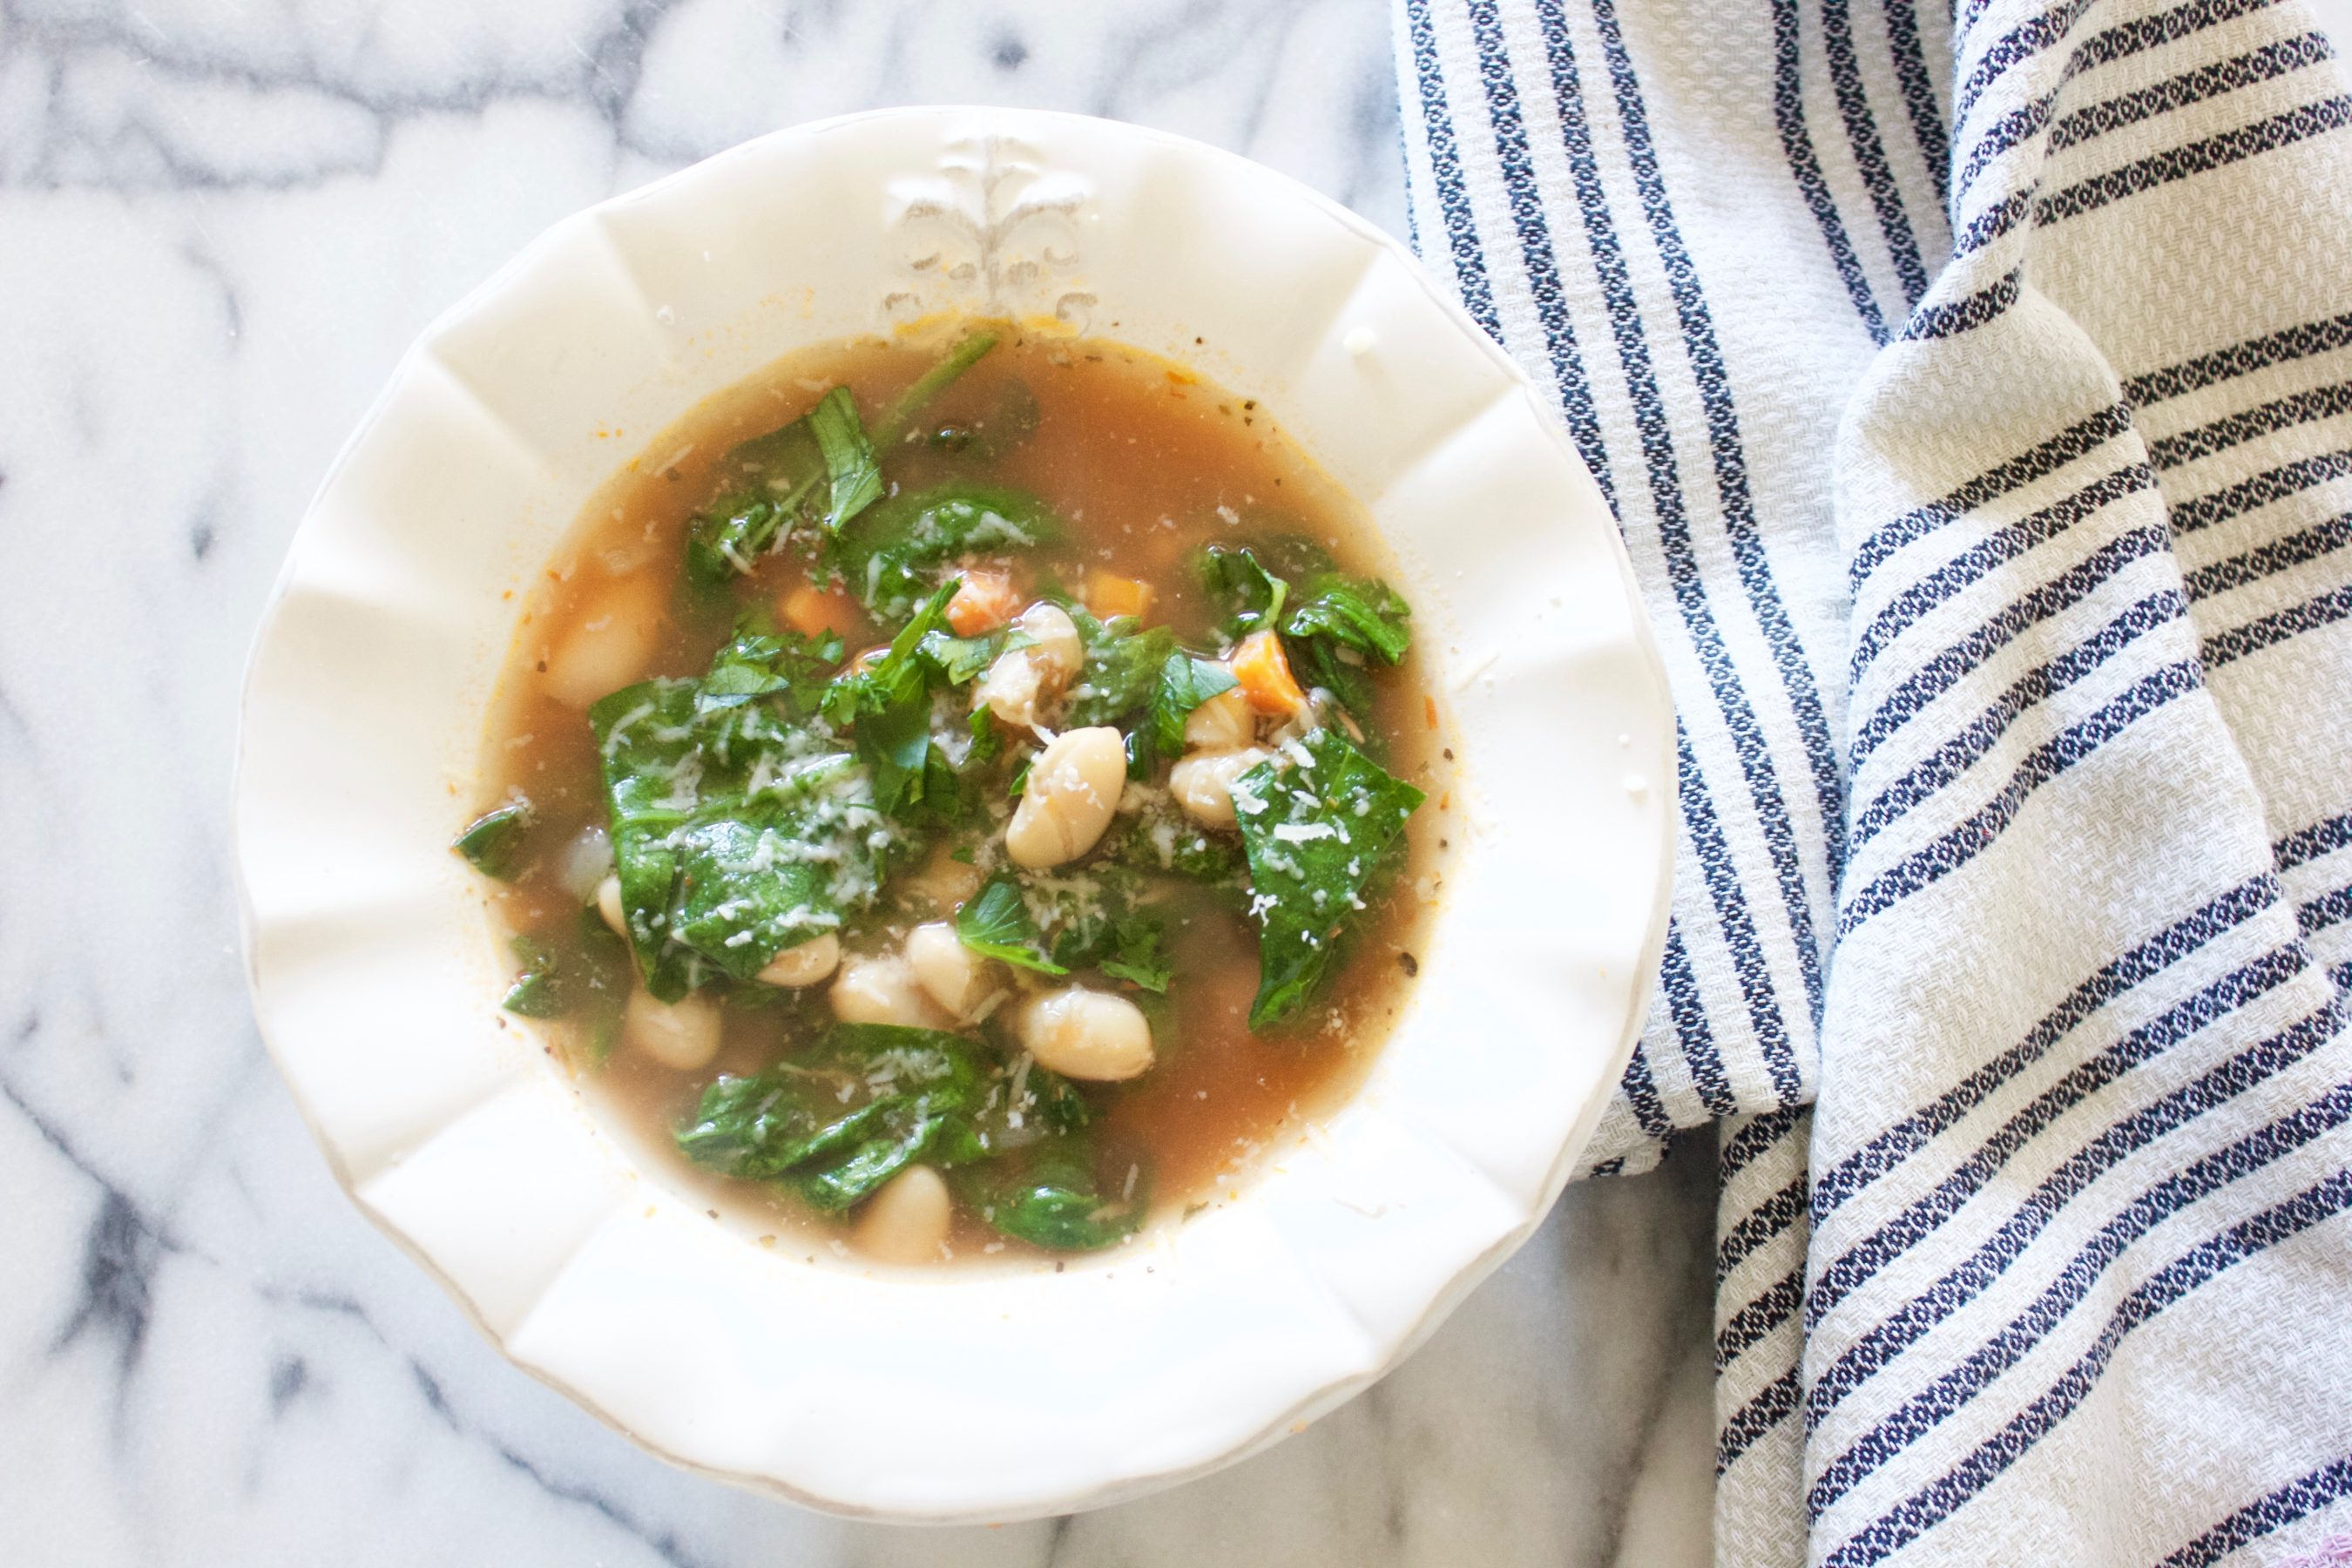 Soup with white beans and spinach and carrots in a white bowl on a marble counter top